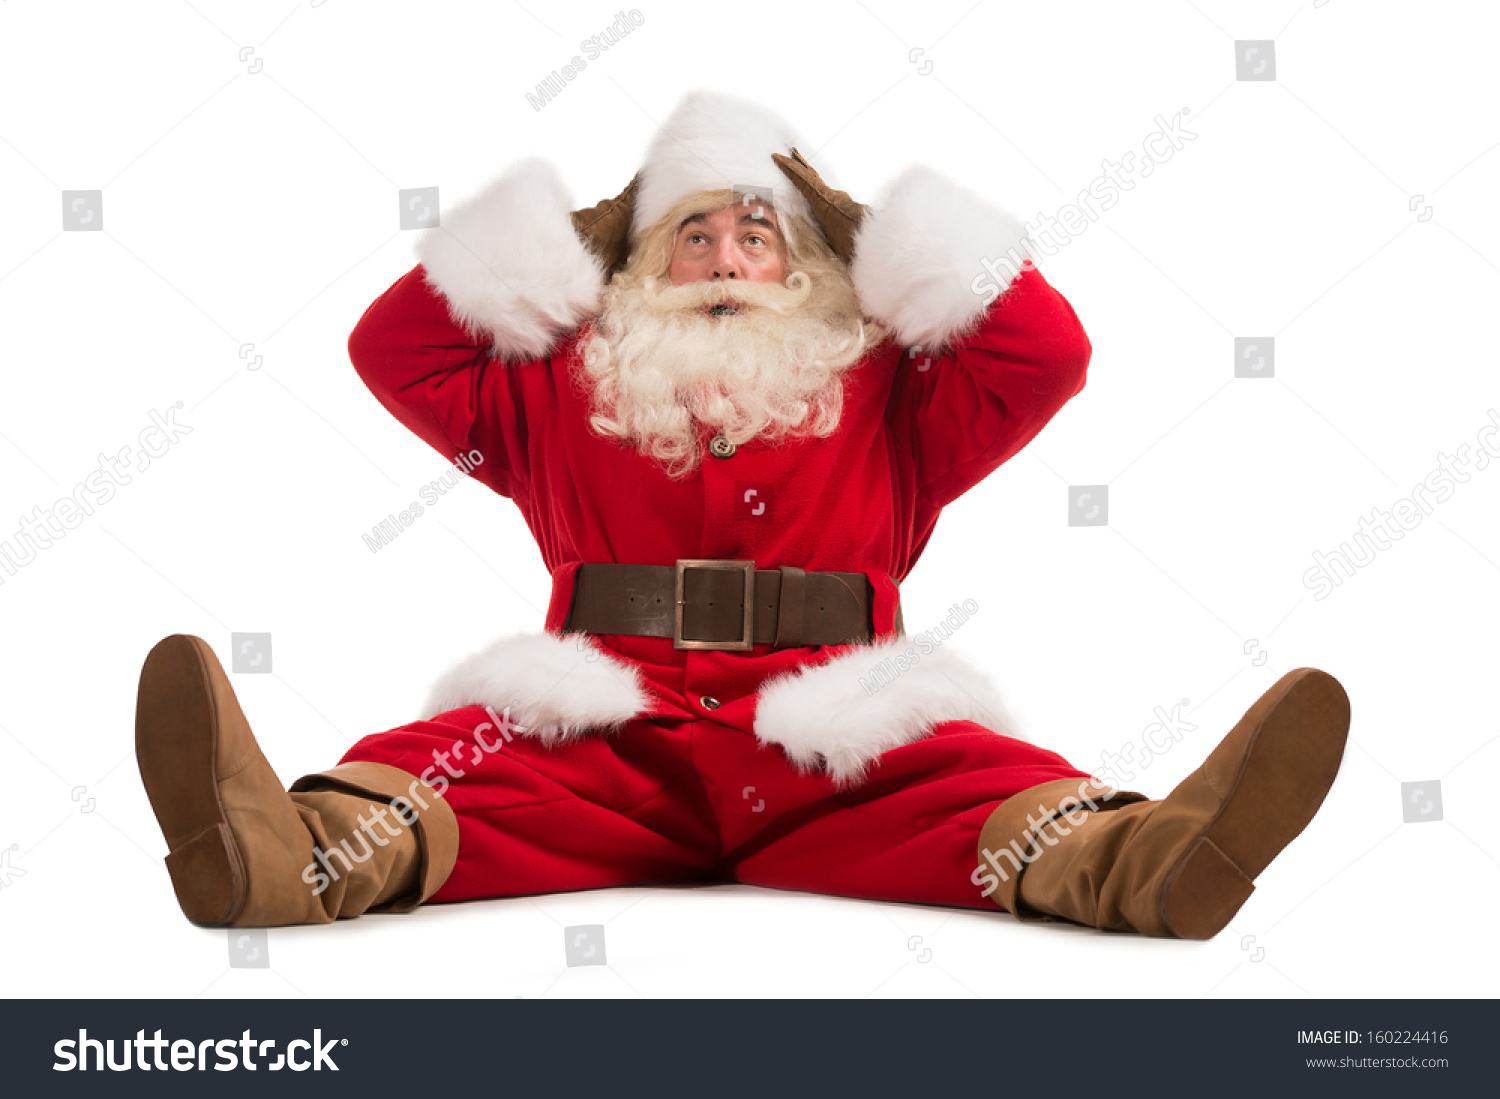 Surprised by Santa Claus stock image. Image of hair